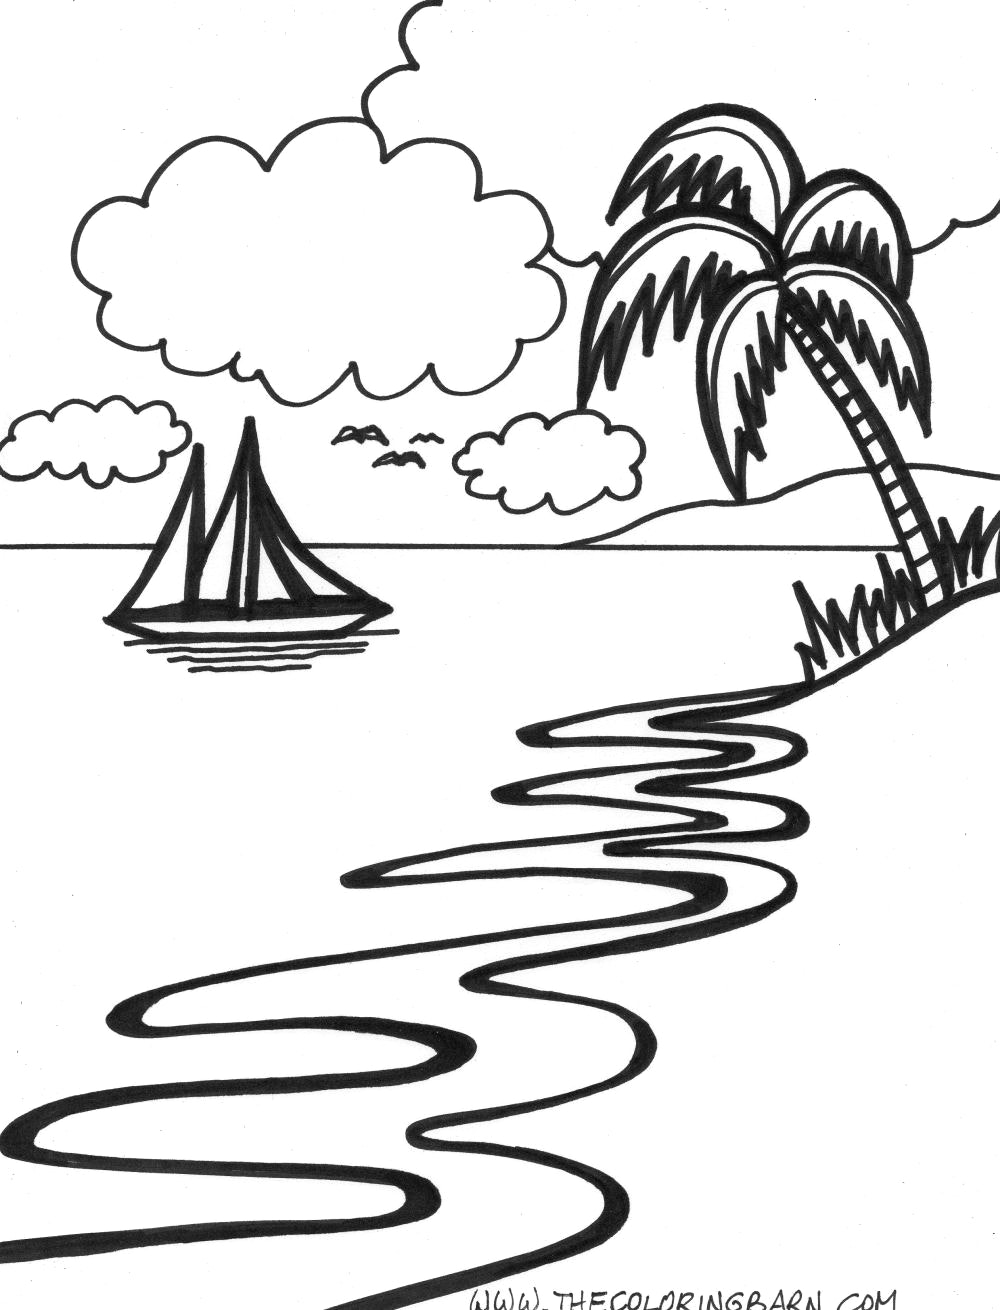 coloring image sunset sunset coloring pages to download and print for free coloring image sunset